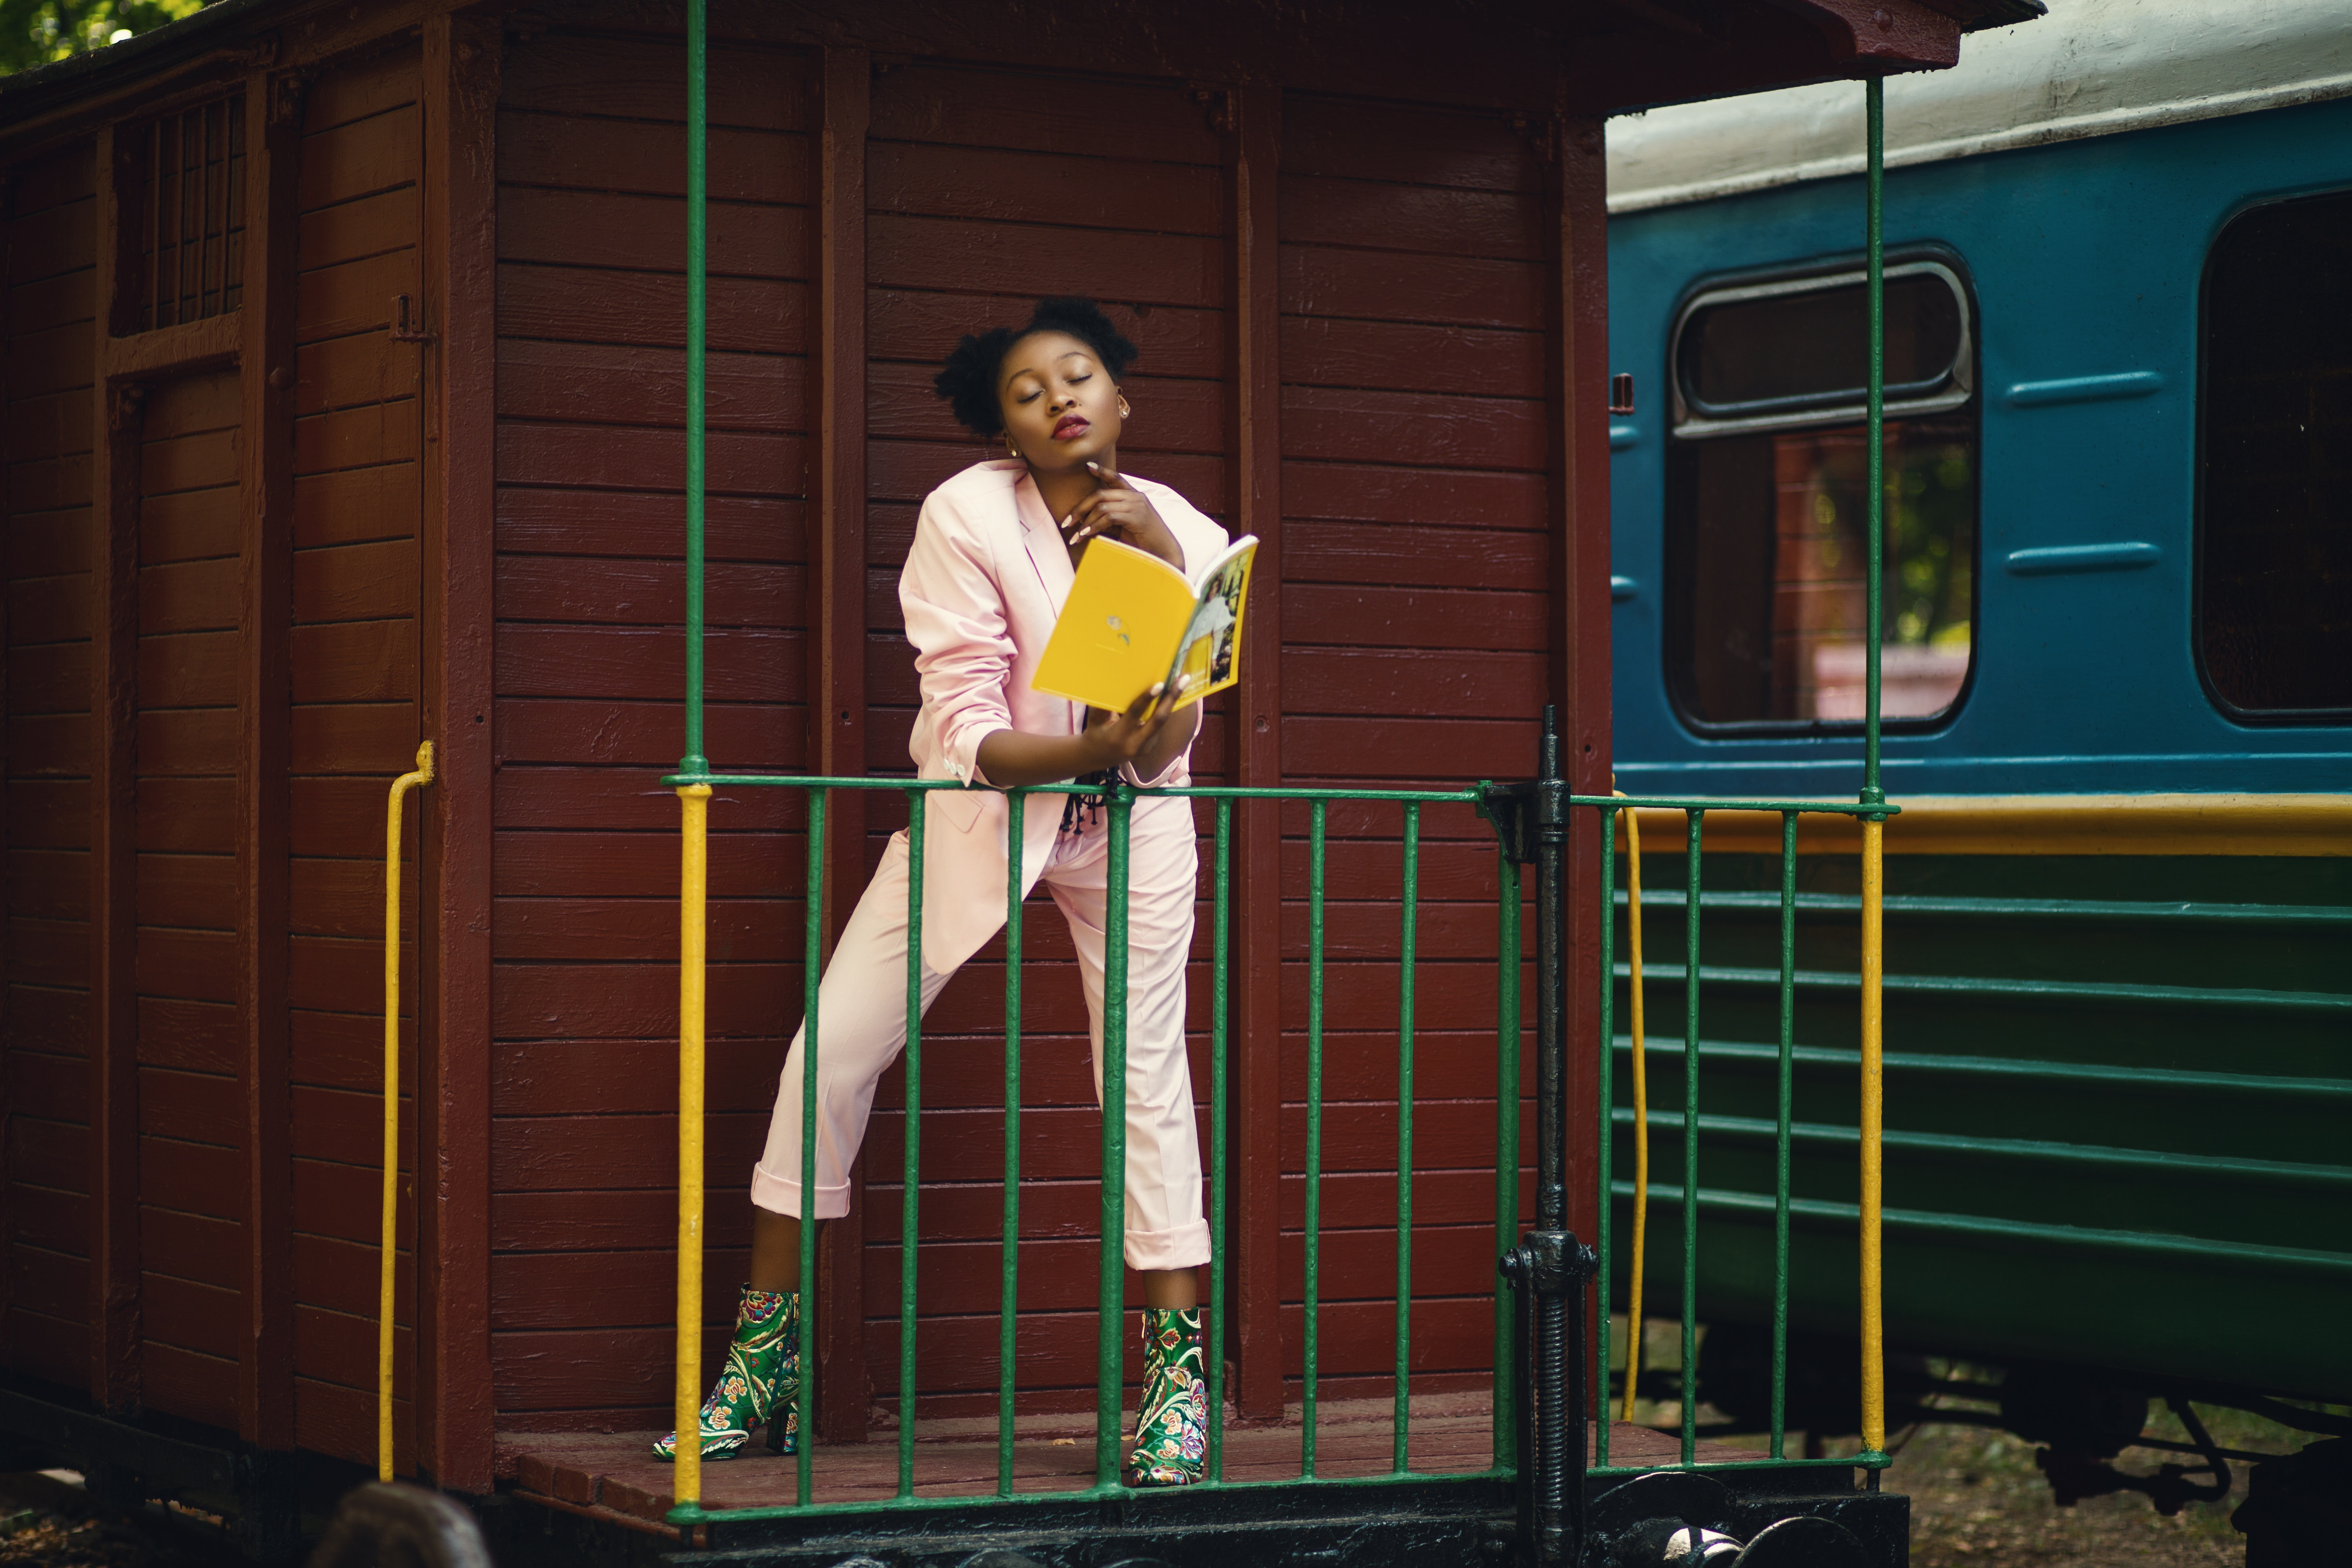 Woman Wearing Pink Blazer, Pants and Green Heeled Shoes Holding Yellow Covered Book, Train, Street, Reading, Train station, HQ Photo